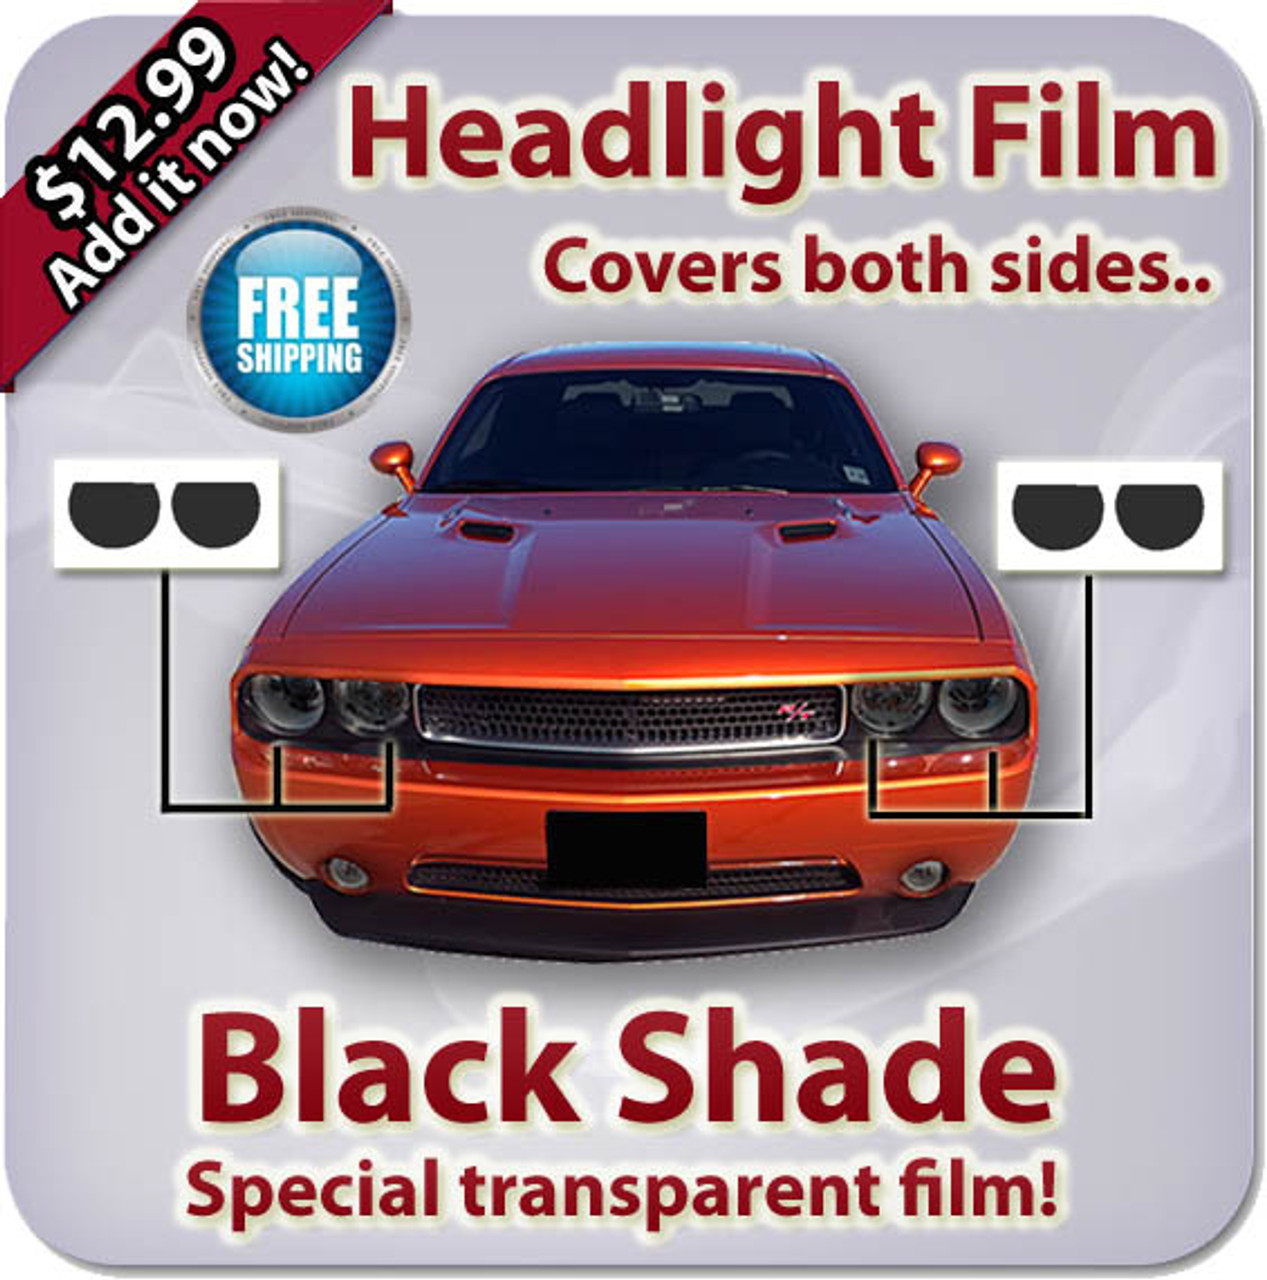 Add a custom shaded look to your headlights and/or taillights. (Offroad use only)